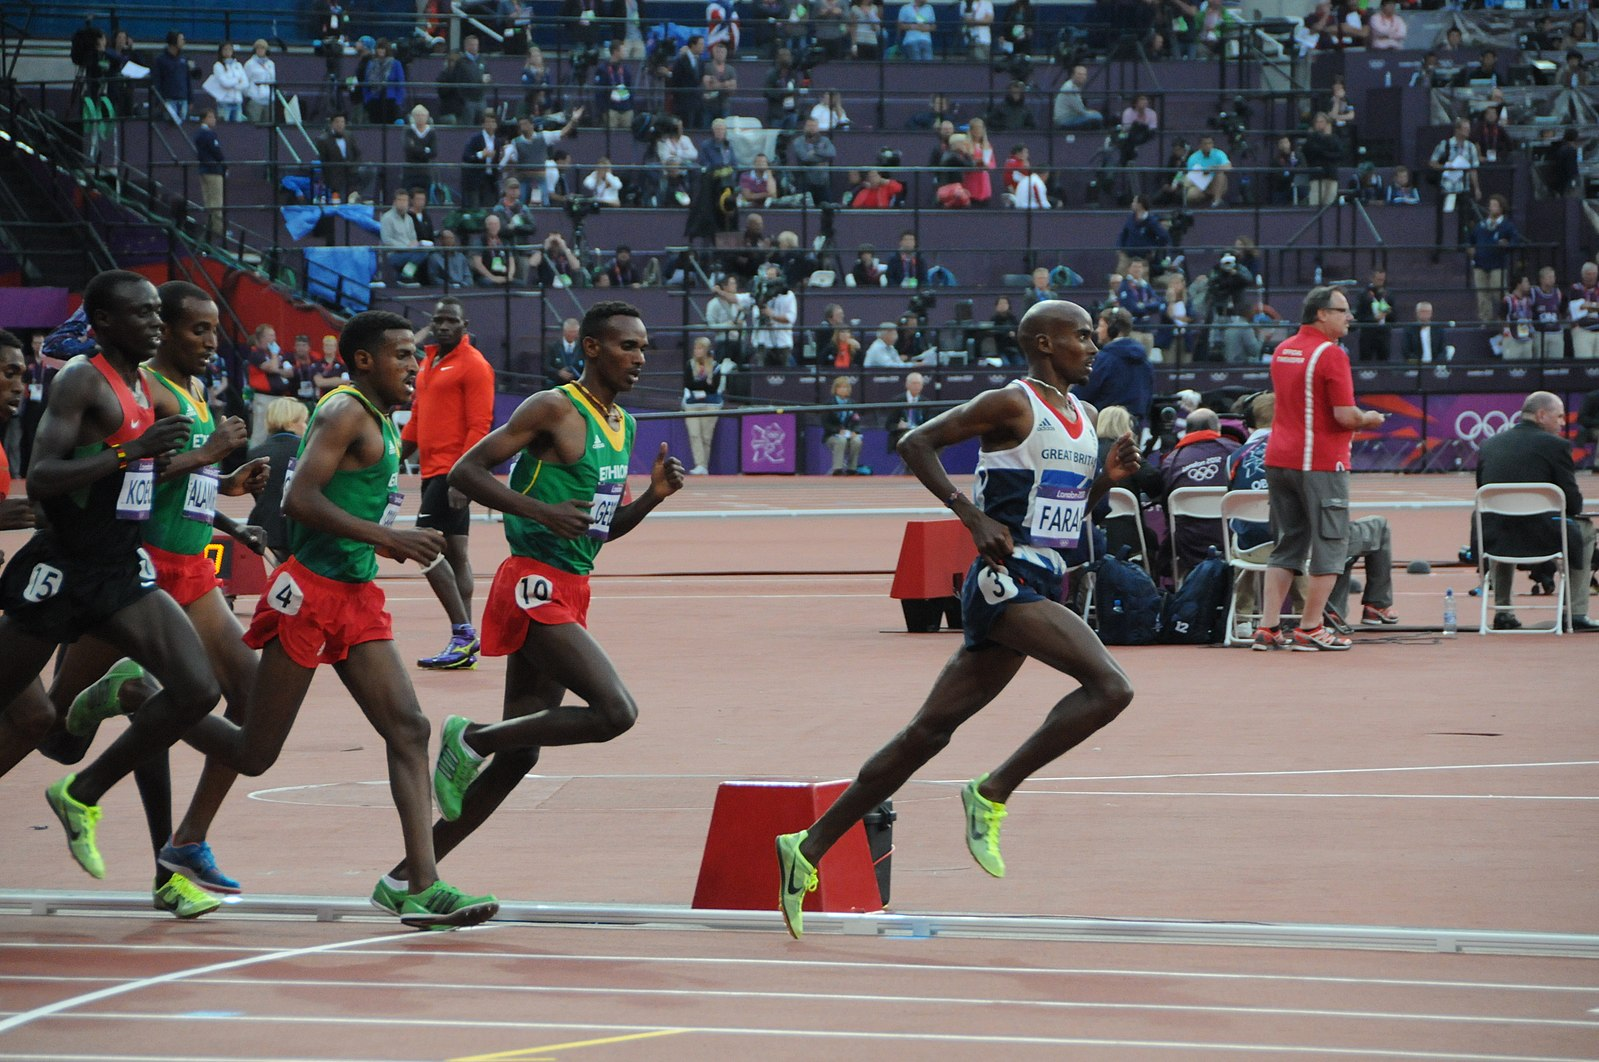 1599px-Mo_Farah_(5000m_Olympic_Final).jpg